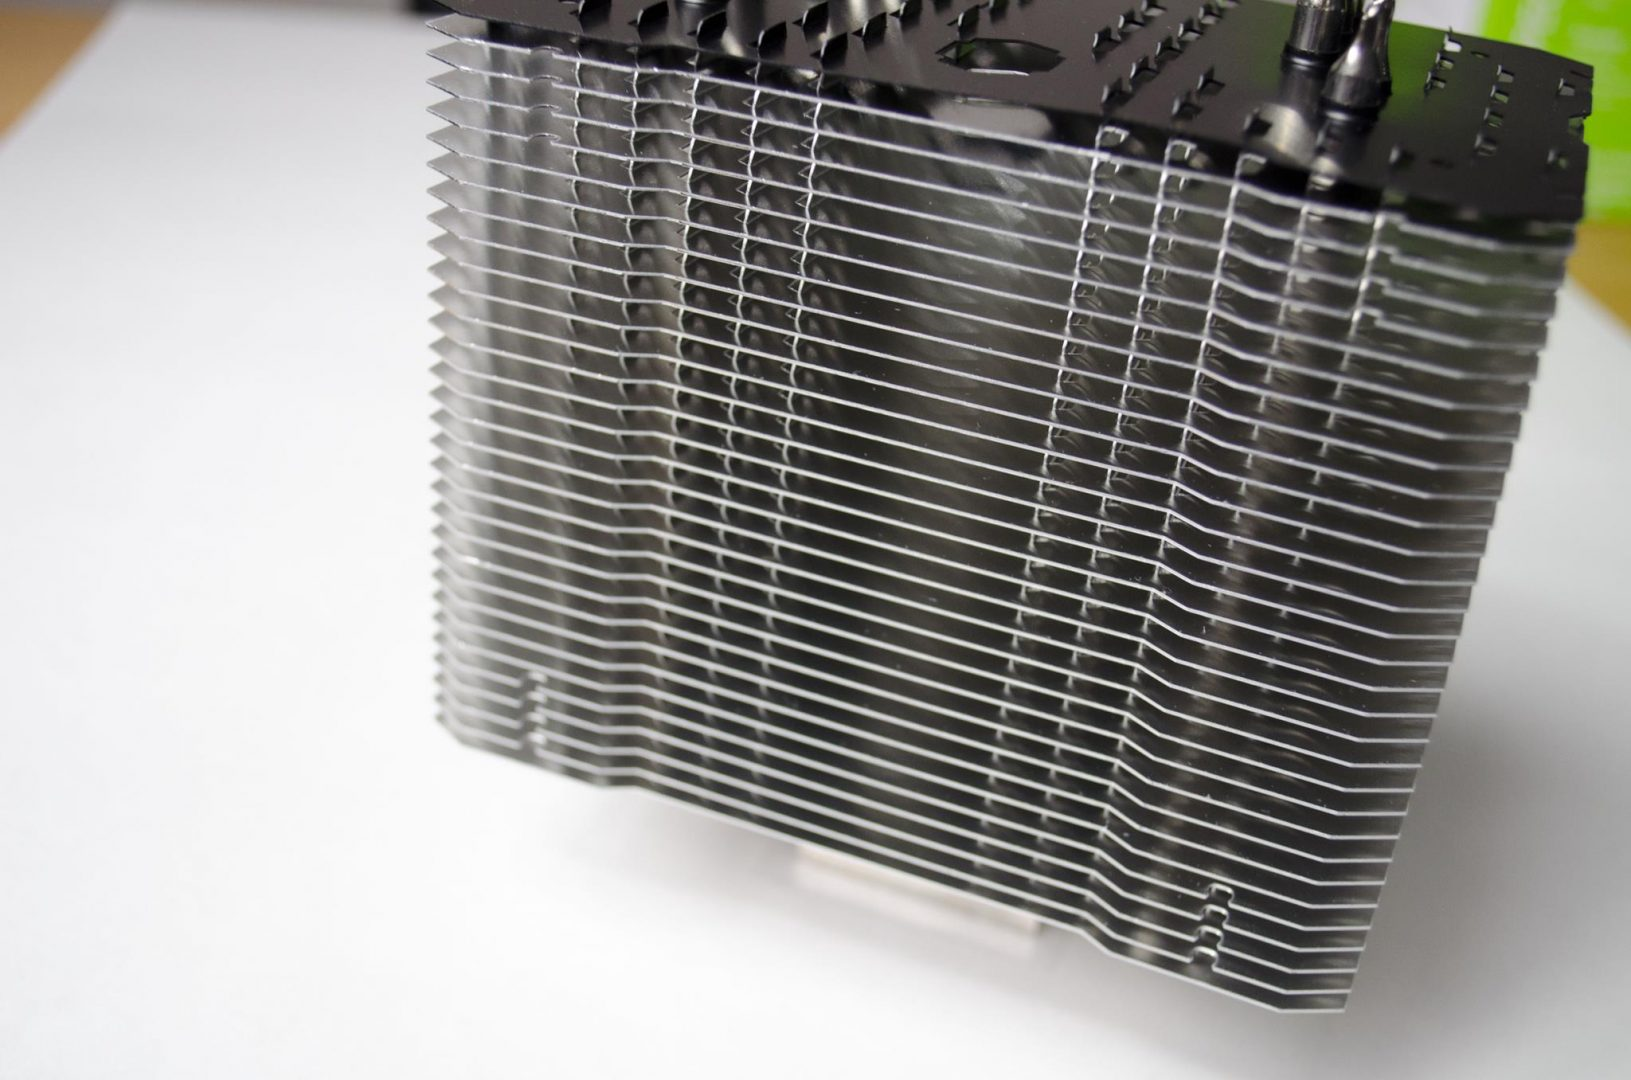 thermalright-macho-120-sbm-cpu-cooler-review-_7